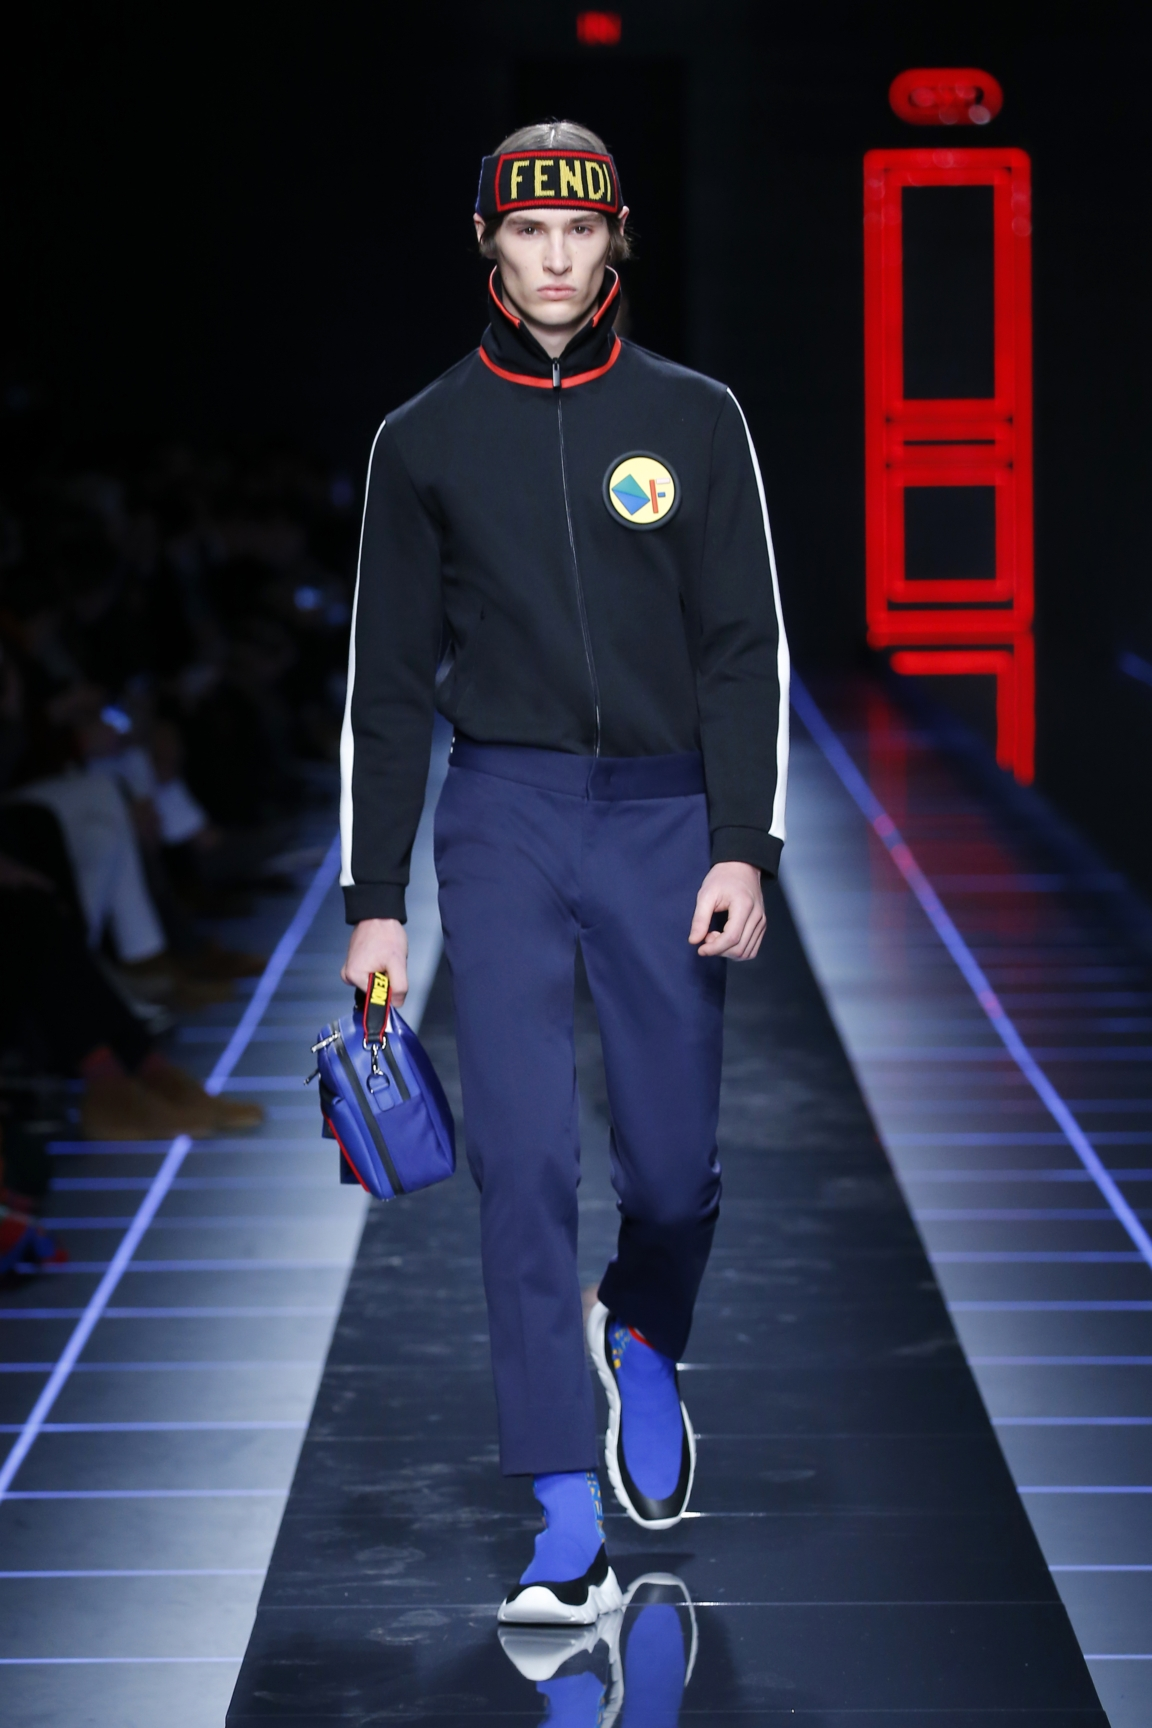 fendi-men-fw16-17-look-28